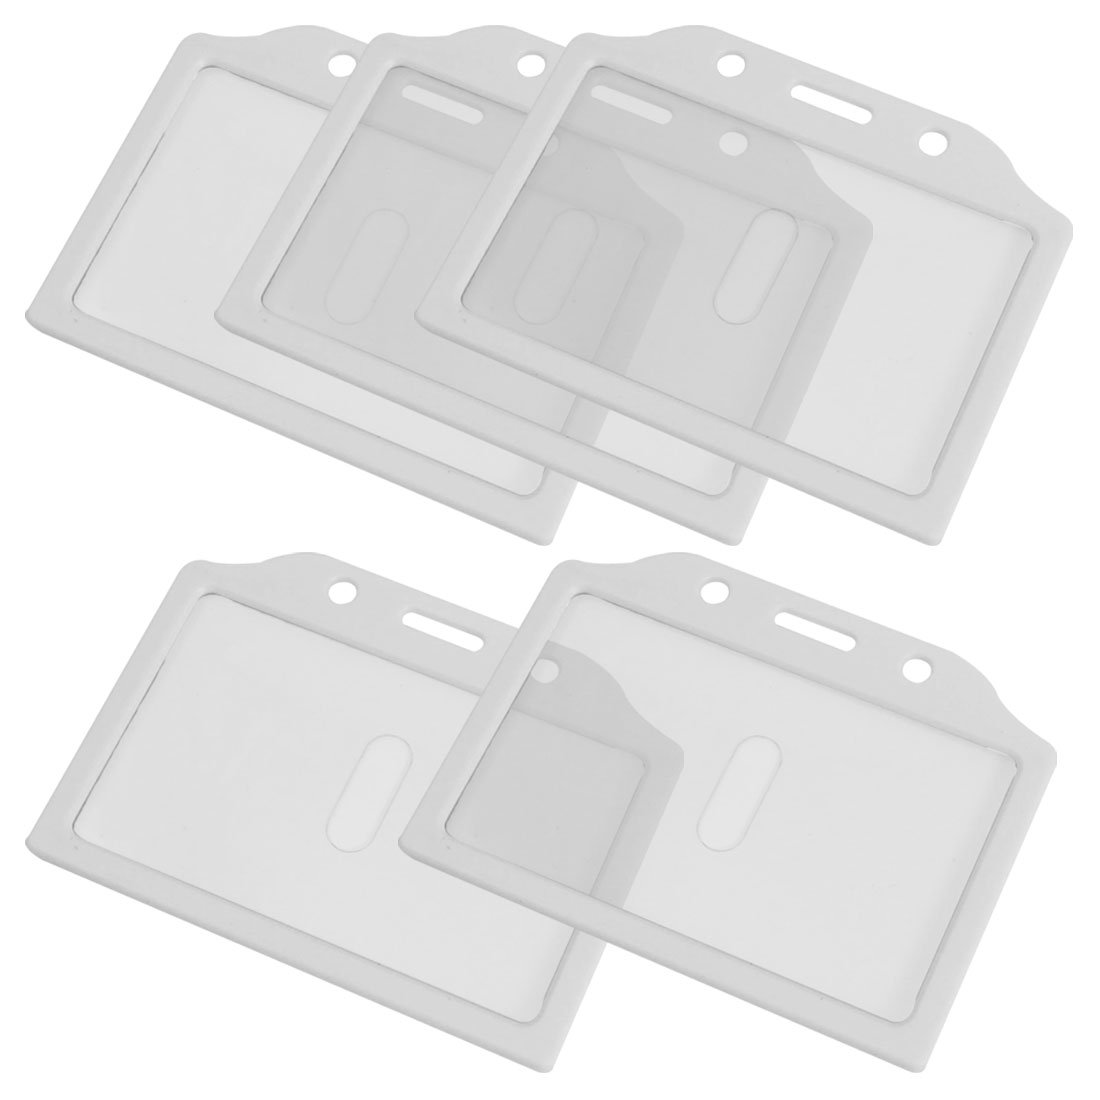 Business Card Plastic Case Gallery - Card Design And Card Template